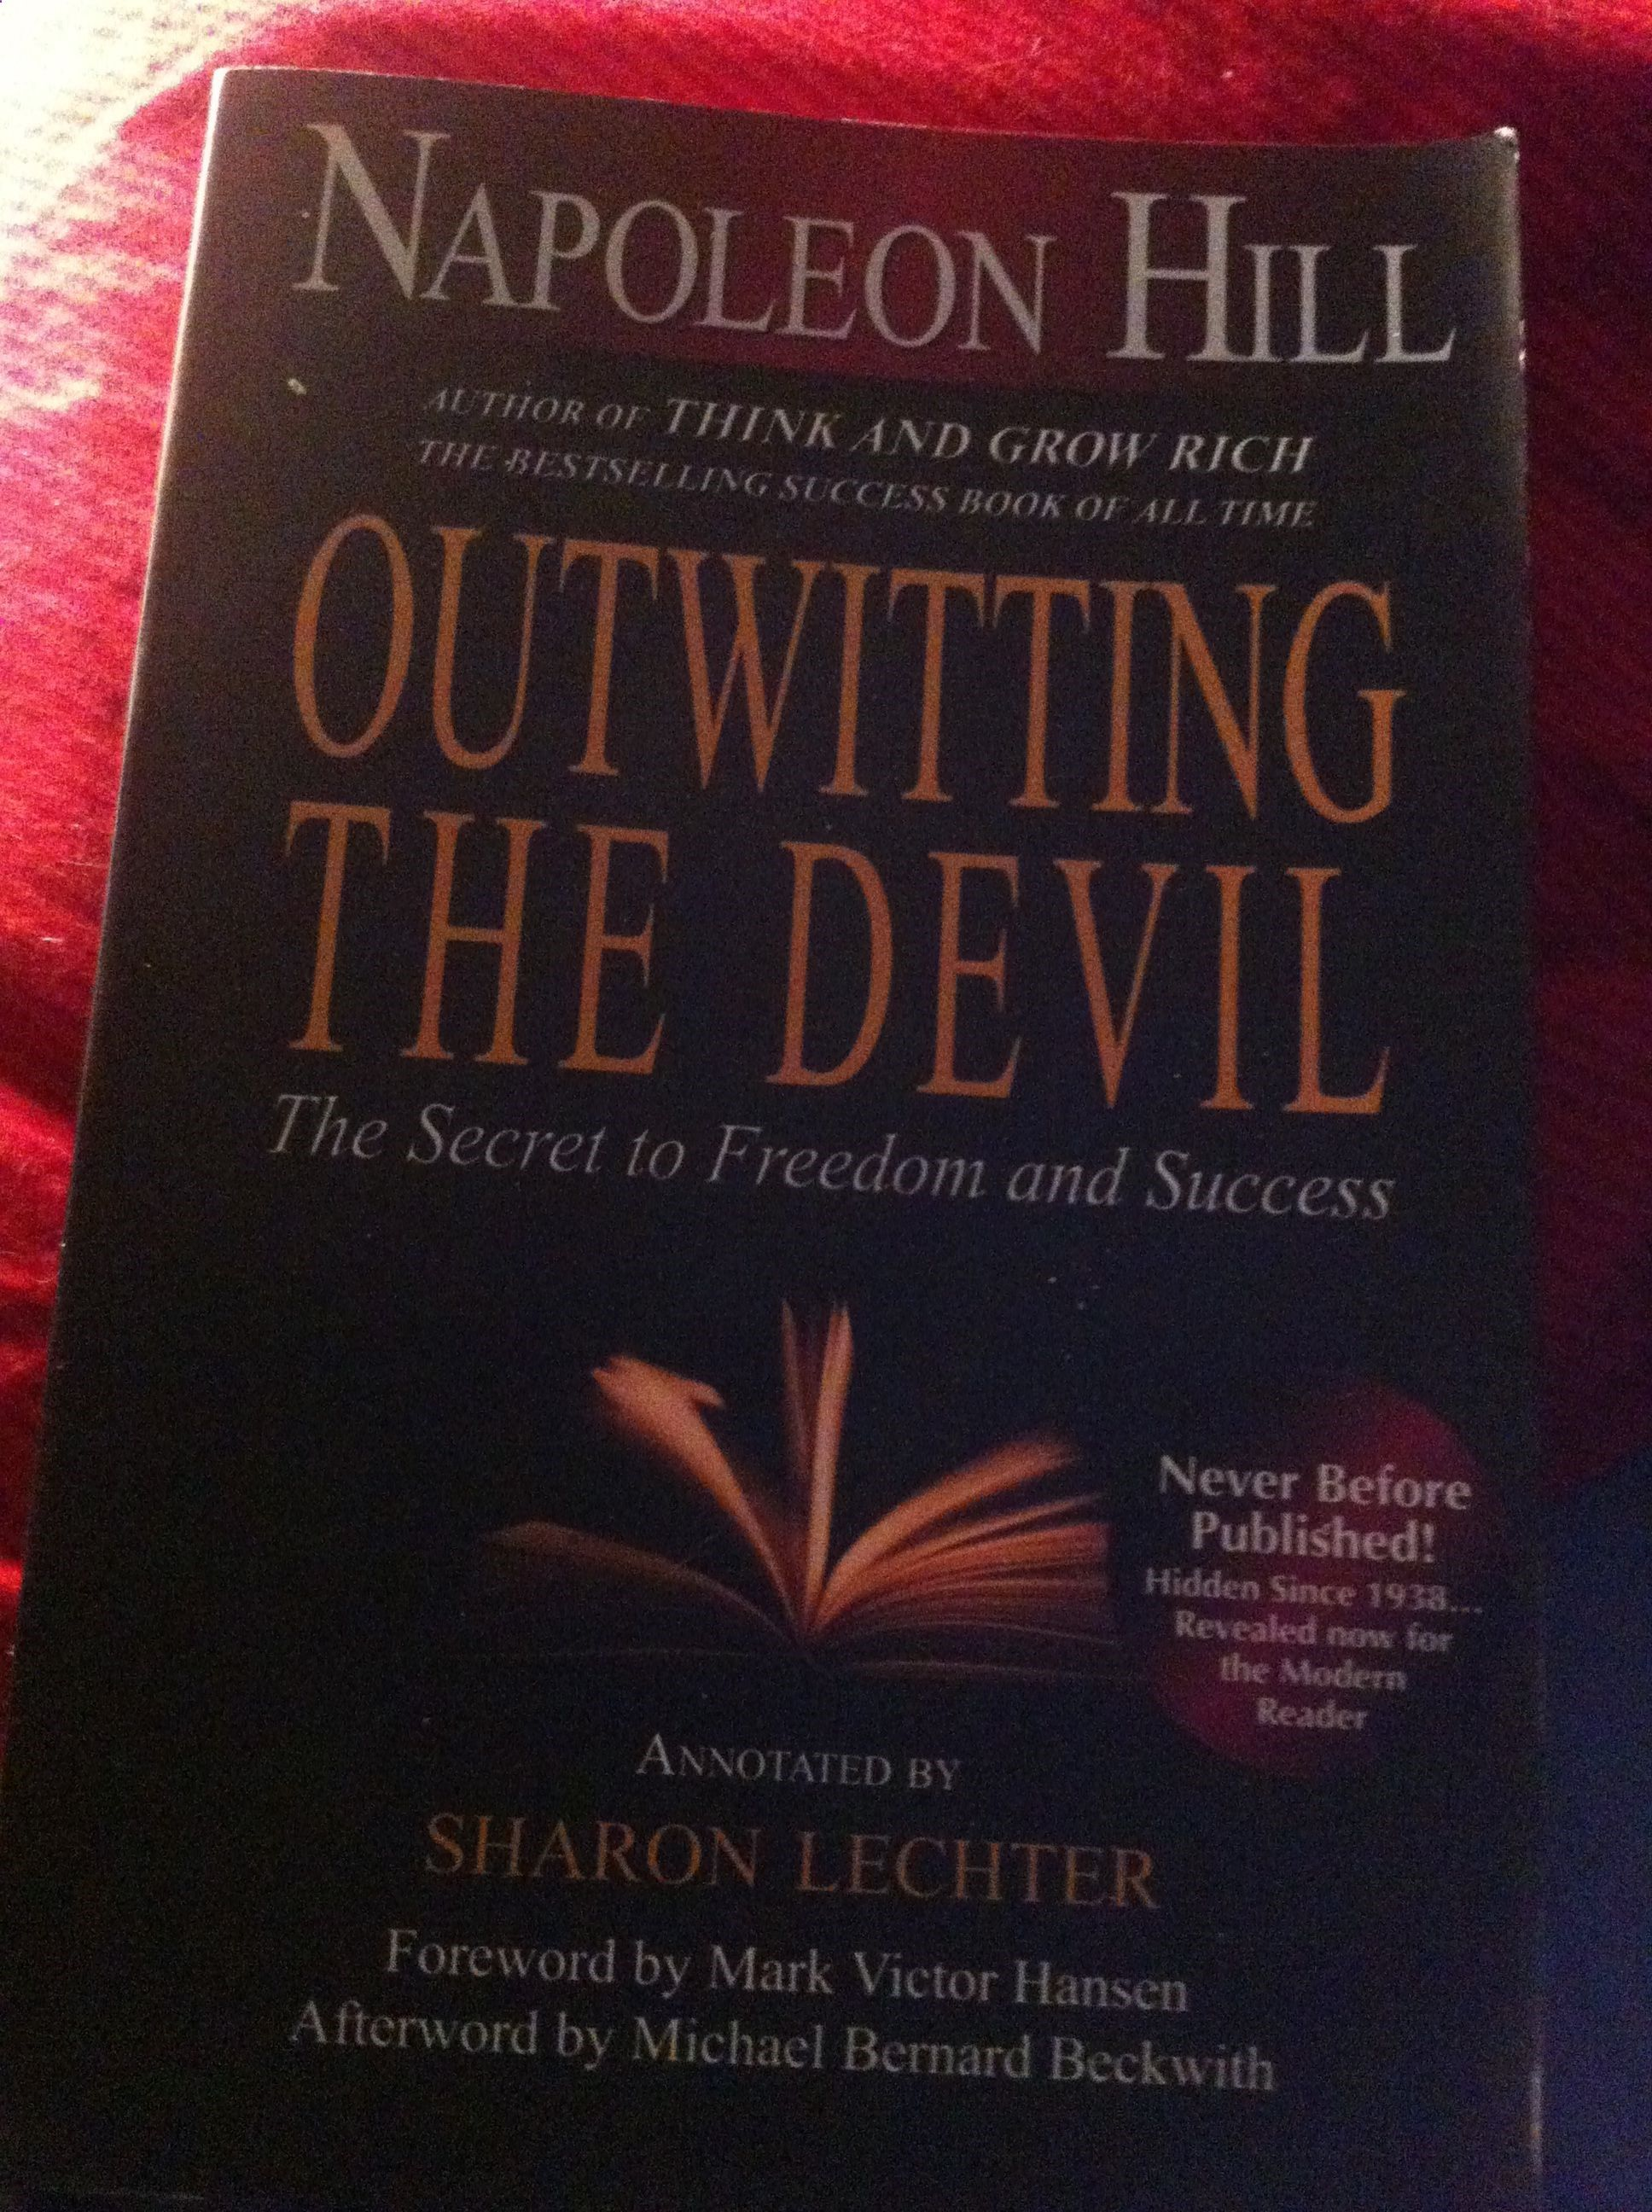 Outwitting The Devil Quotes Outwitting The Devil Napoleon Hill Napoleon Hill Writes About His